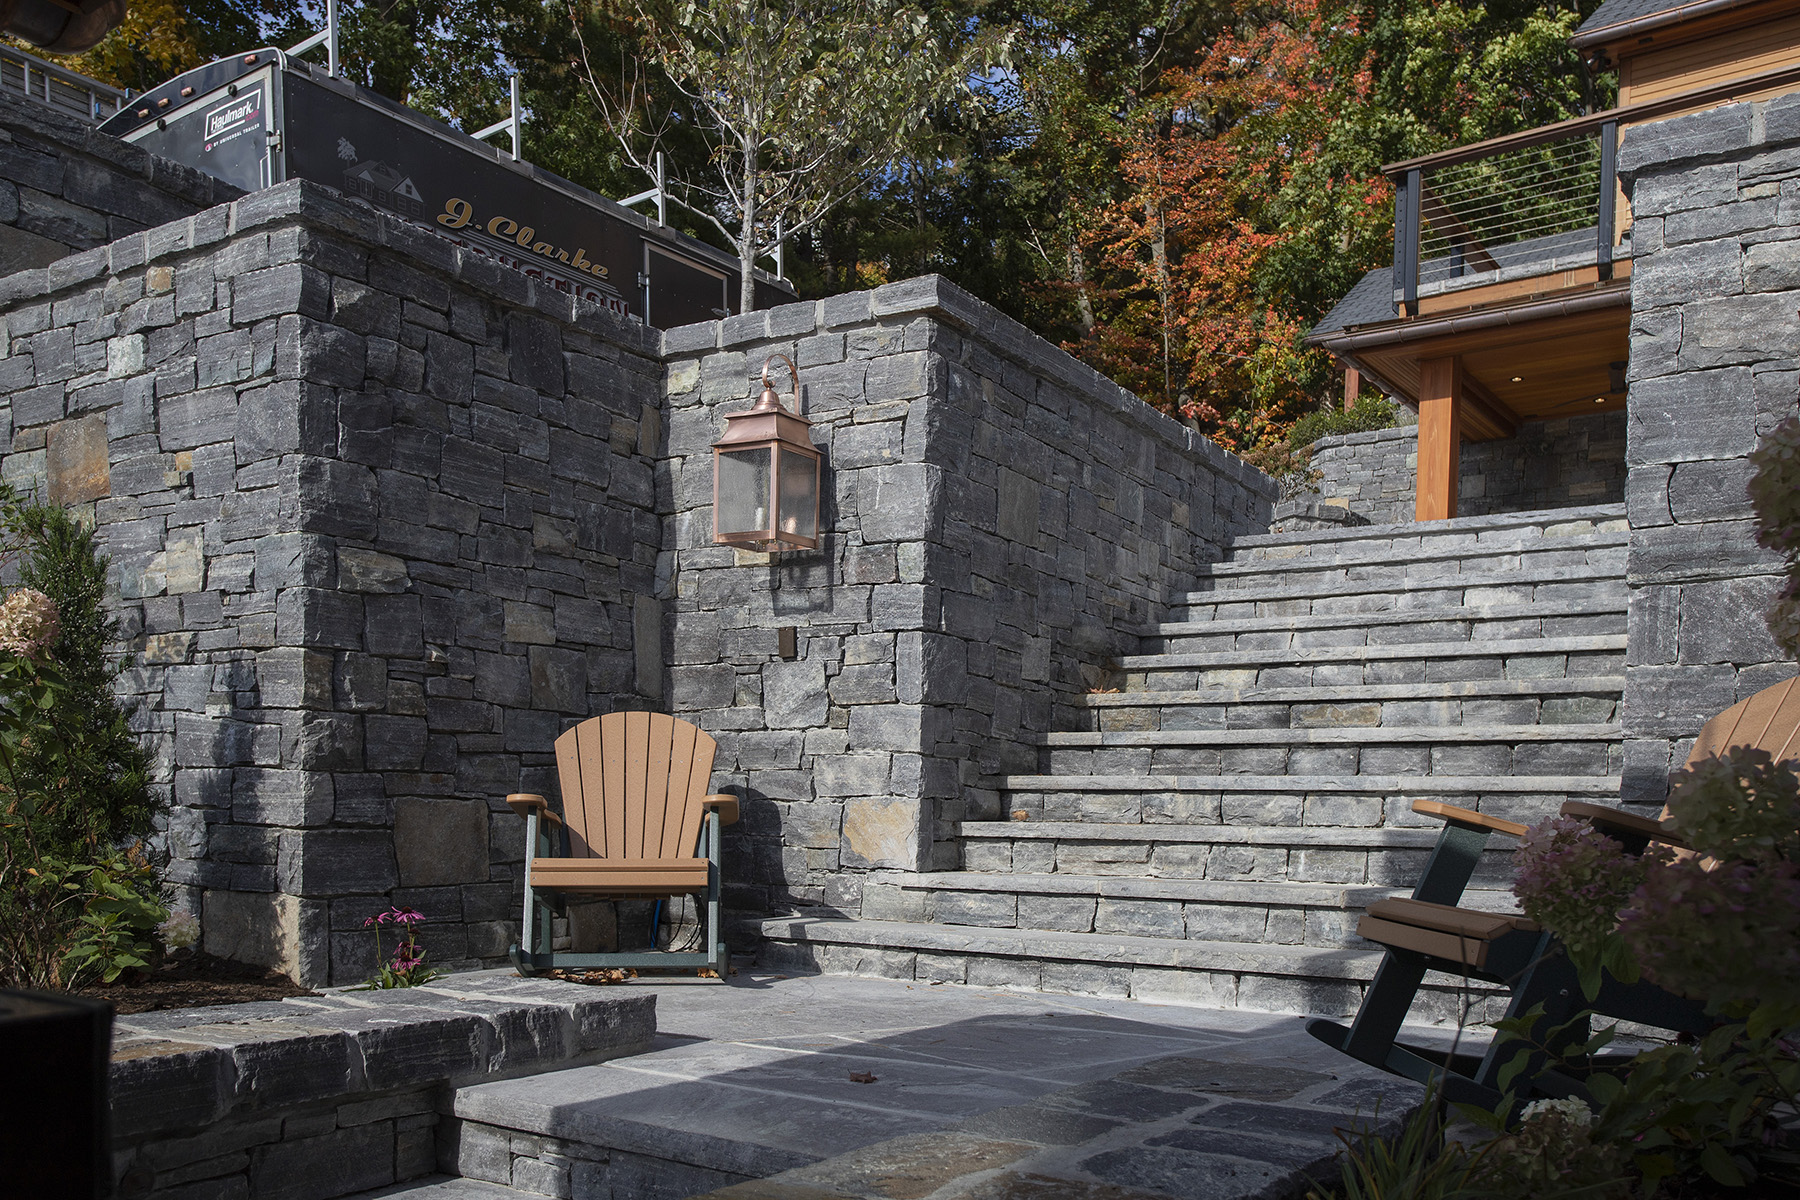 stone staircase with adirondack chairs